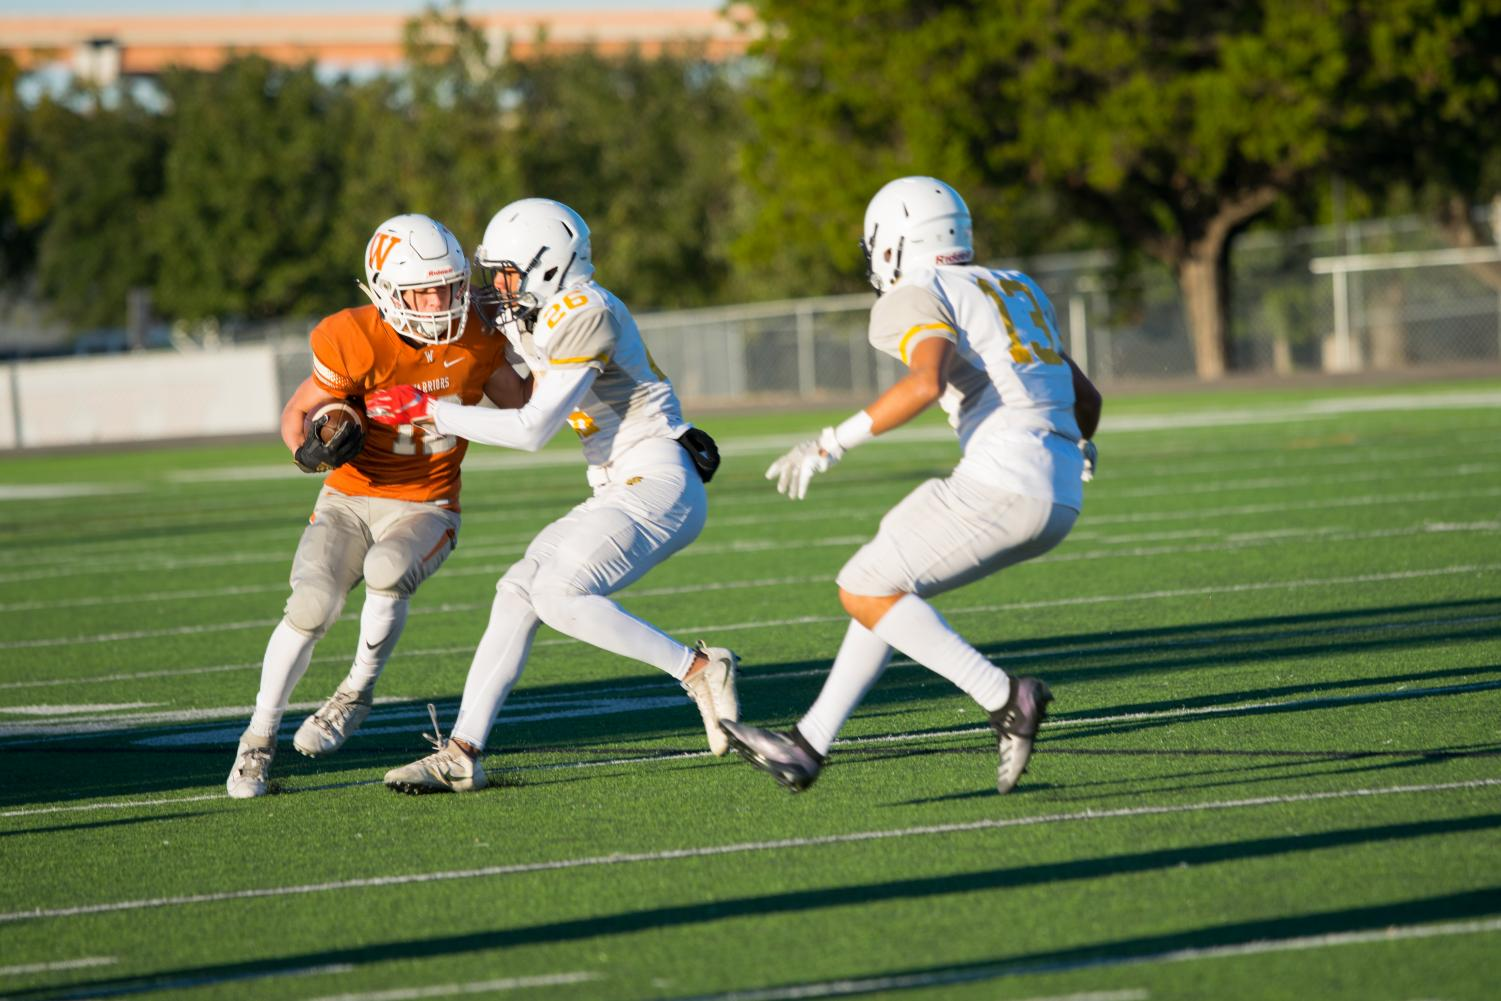 GALLERY%3A+JV+Orange+Football+Drops+Shootout+to+Stony+Point+38-28